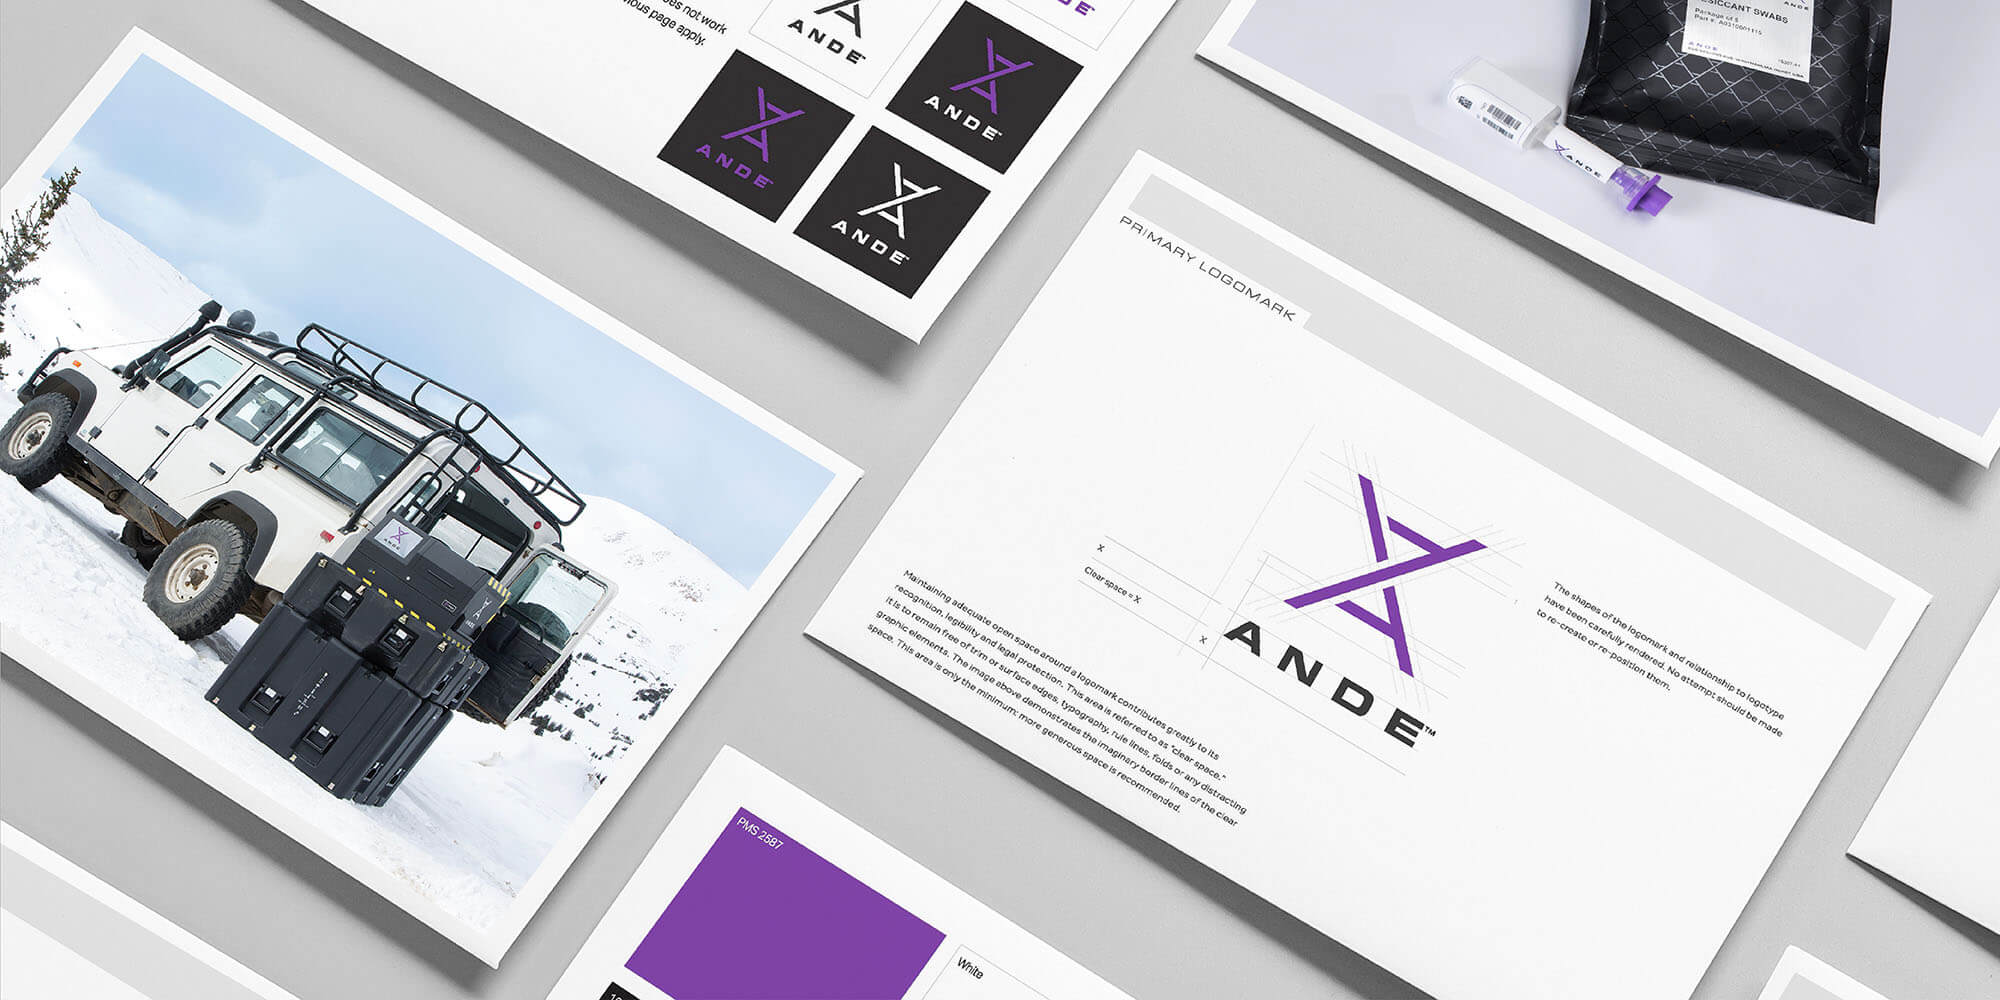 ANDE brand guidelines work